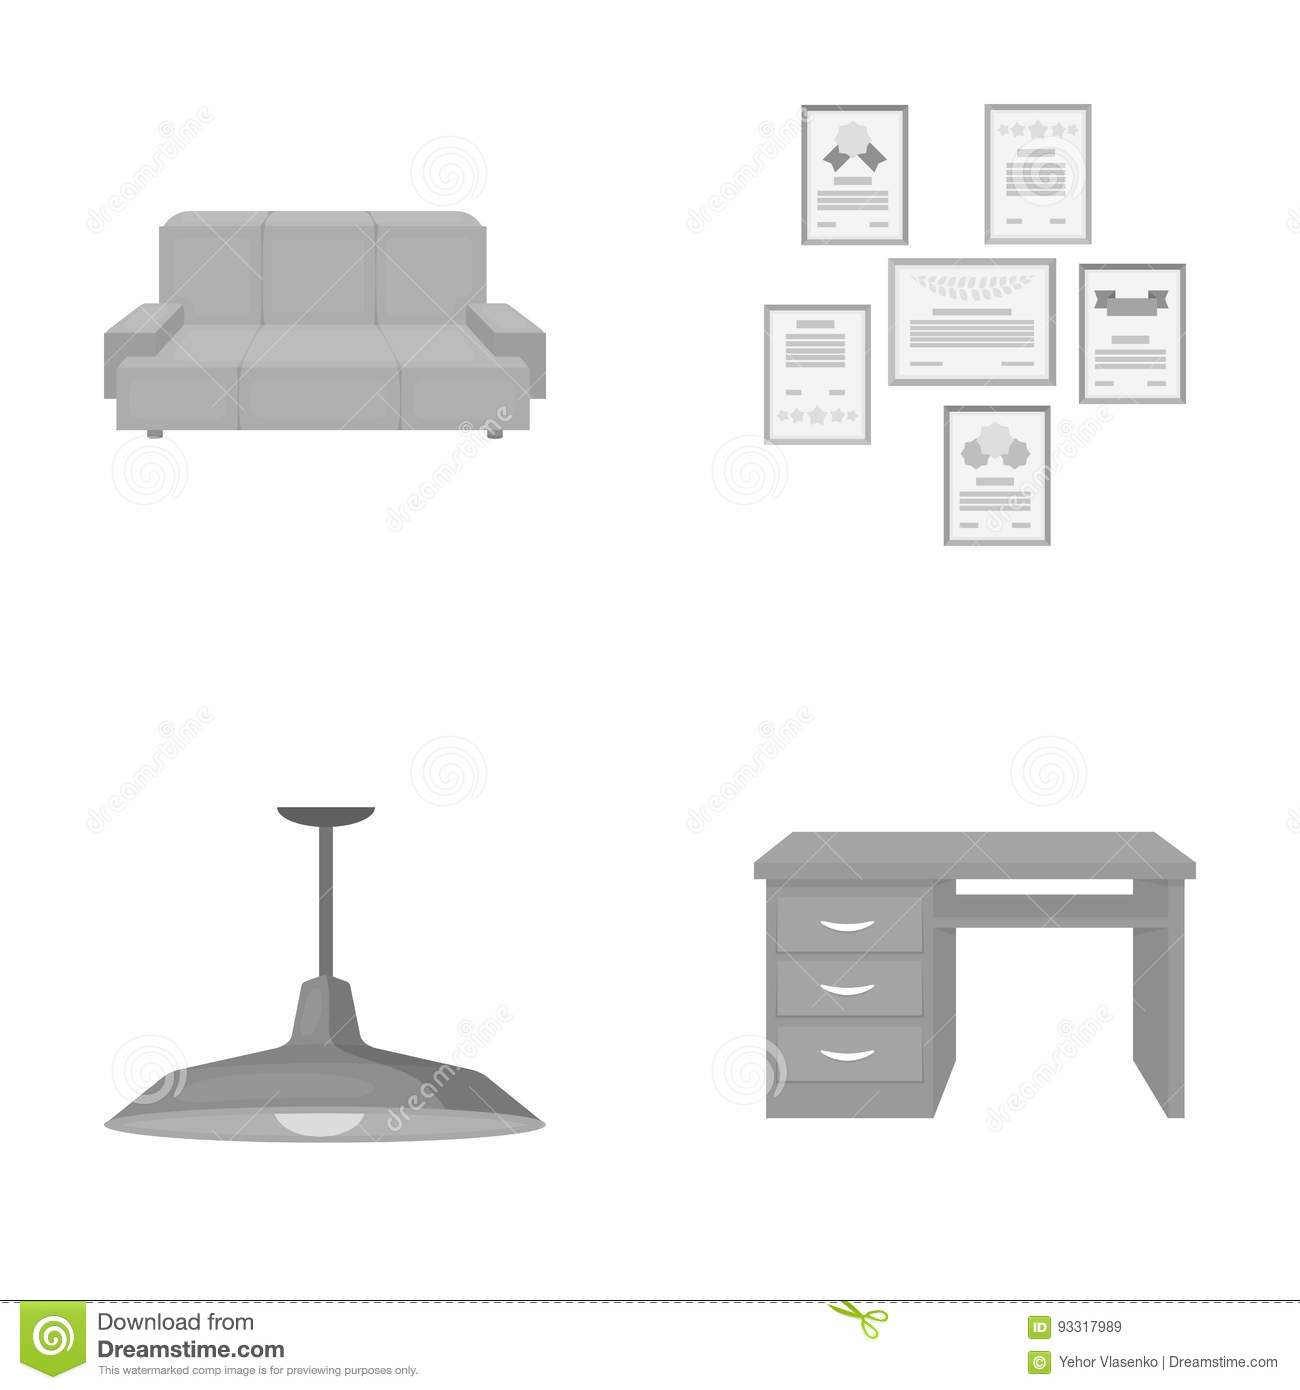 overhead sofa floor lamp white set up comfortable letters and diplomas within the